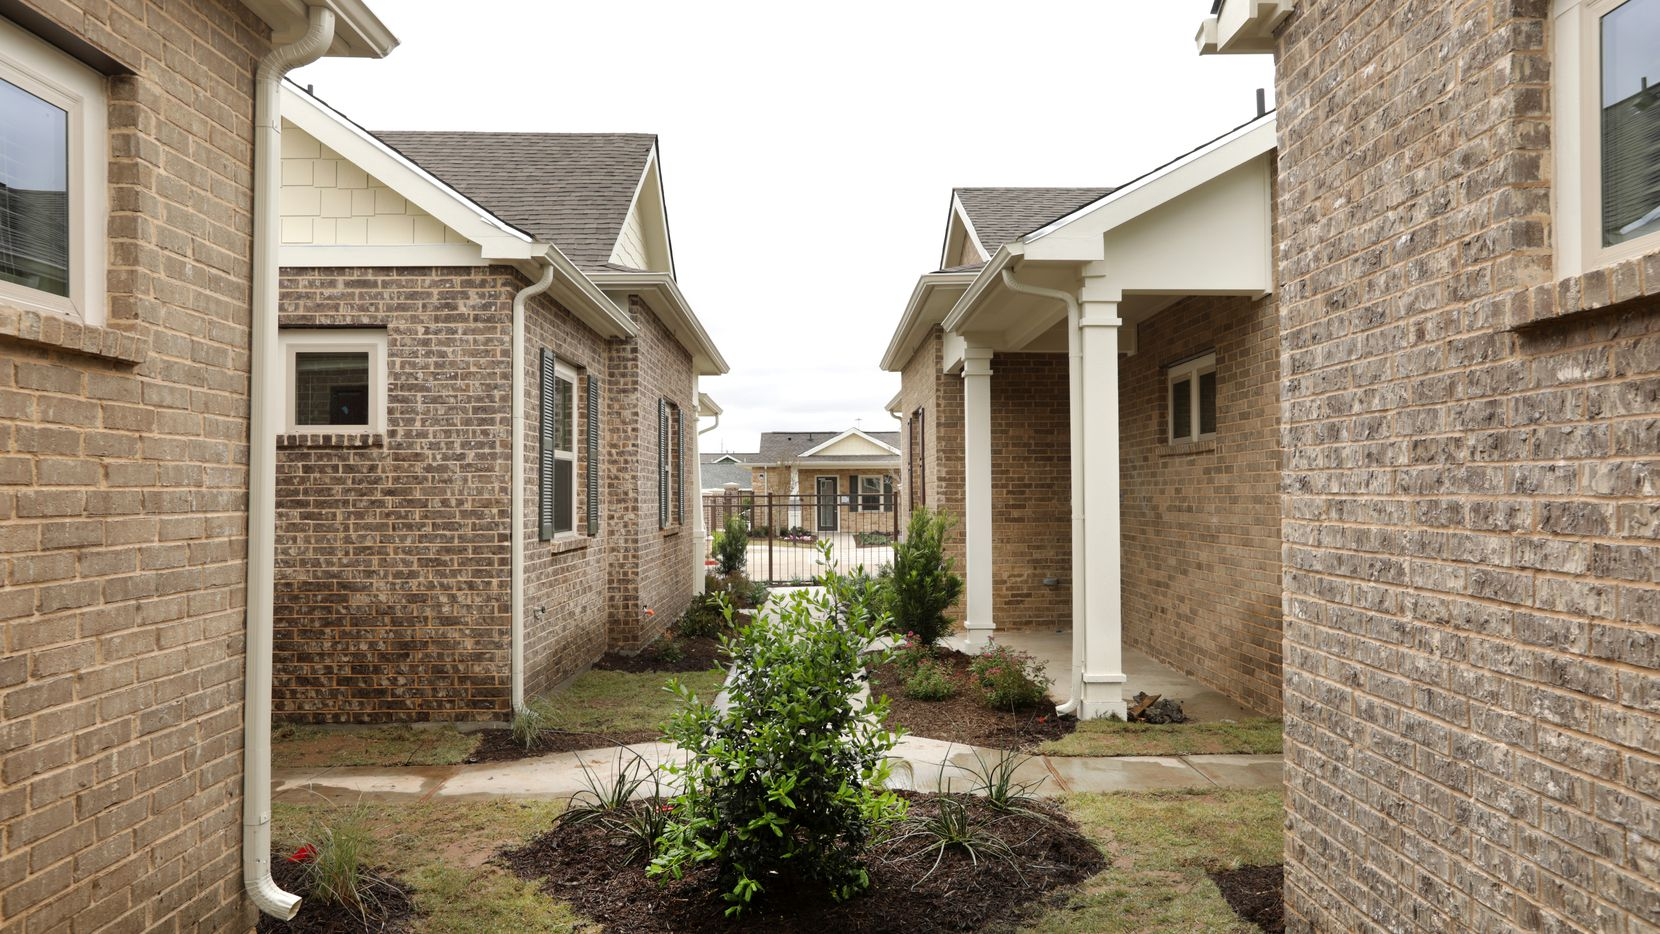 Homes at the Avilla Northside home community in McKinney start at near $1,400 a month.